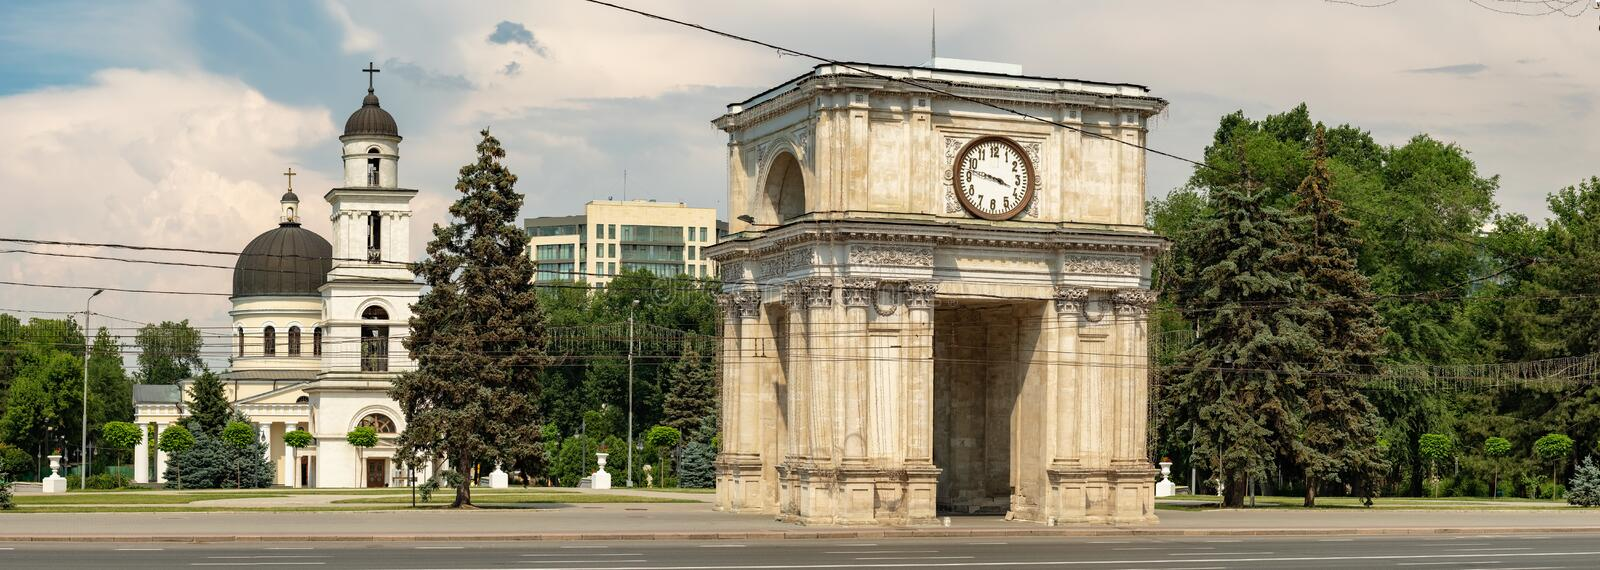 The Triumphal Arch in Chisinau, Moldova royalty free stock image